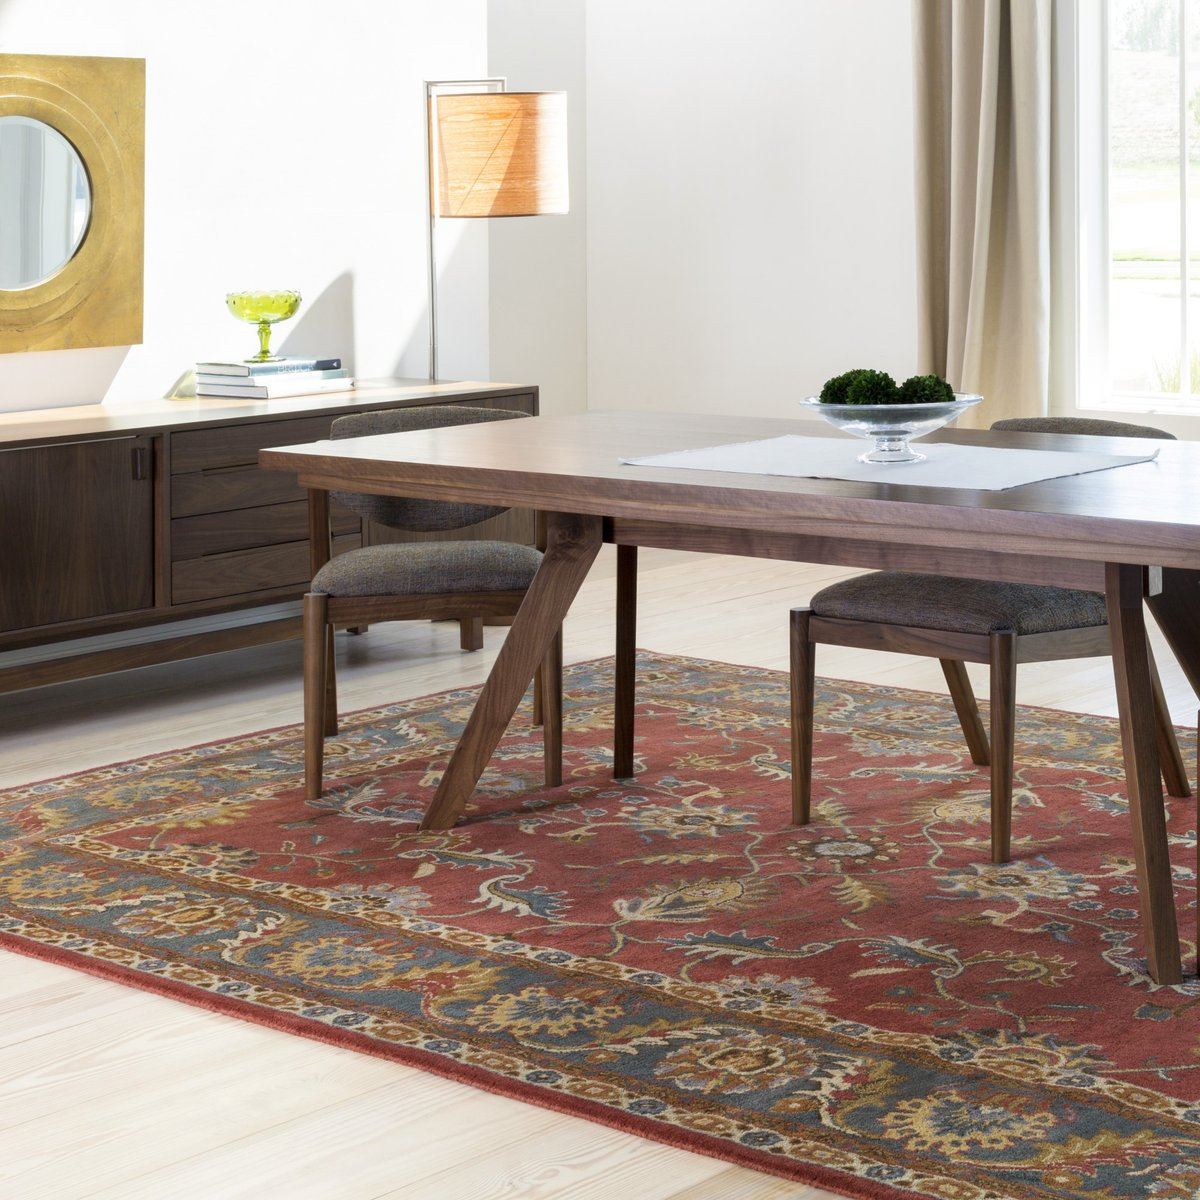 Classic Traditional Dining Room Rug Ideas